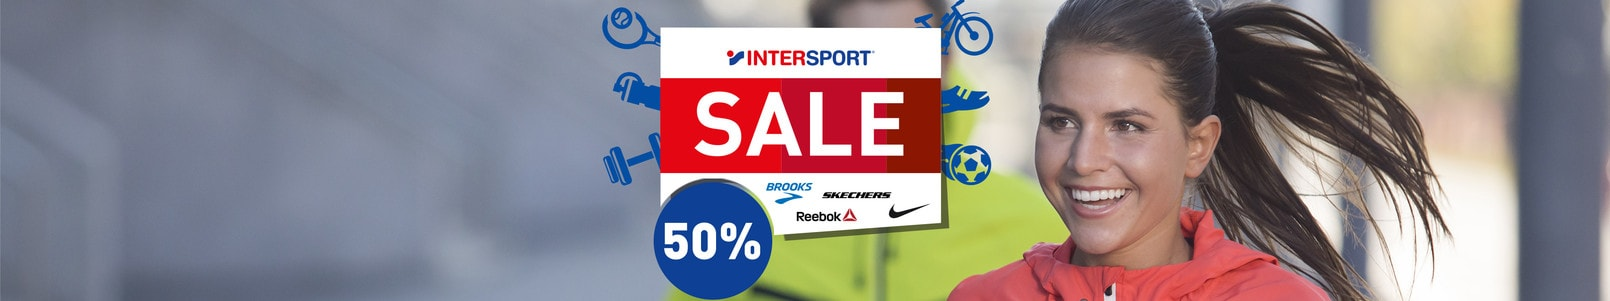 INTERSPORT Sale